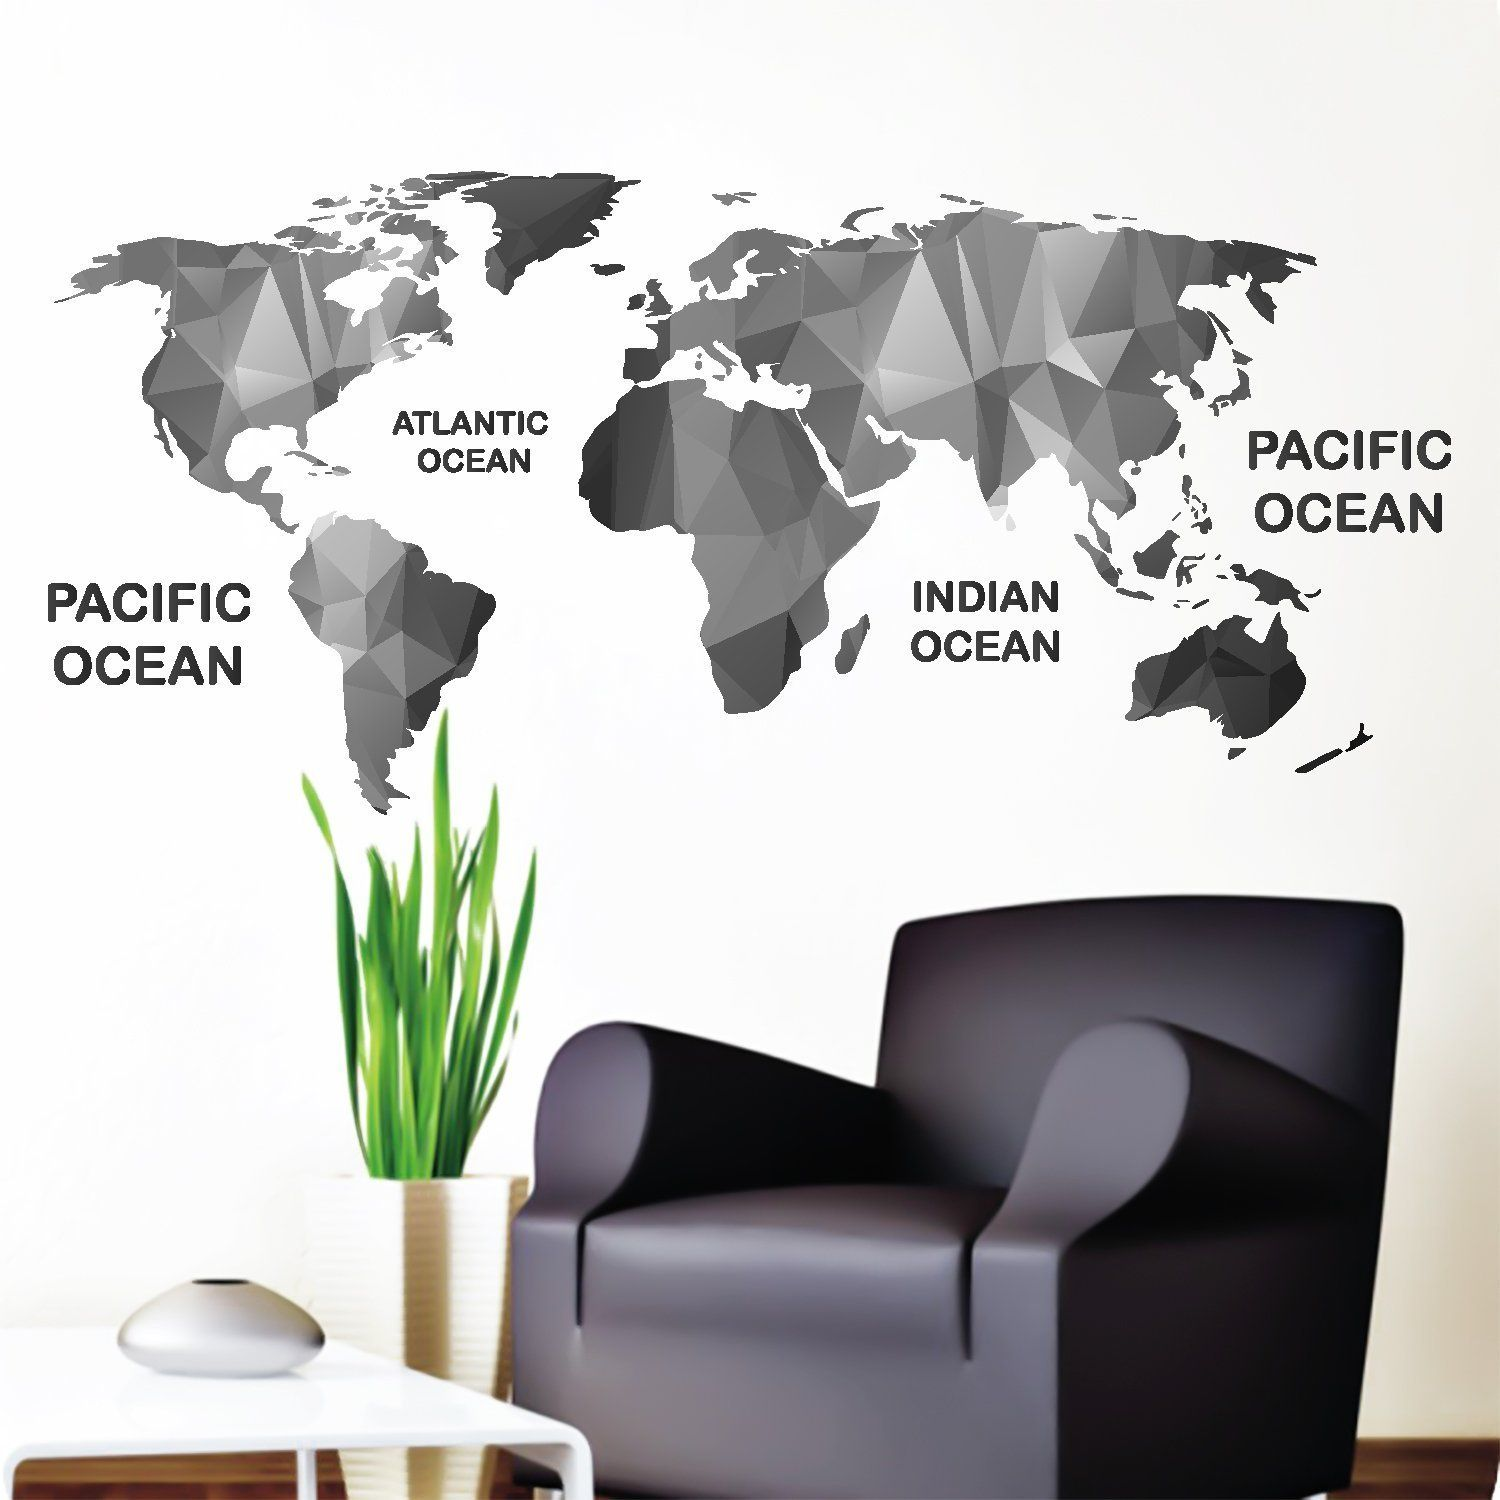 Amazon wall decals world map colored multicolored vinyl amazon wall decals world map colored multicolored vinyl stickers map colorful decal for bedroom office decor dd111 home kitchen gumiabroncs Choice Image